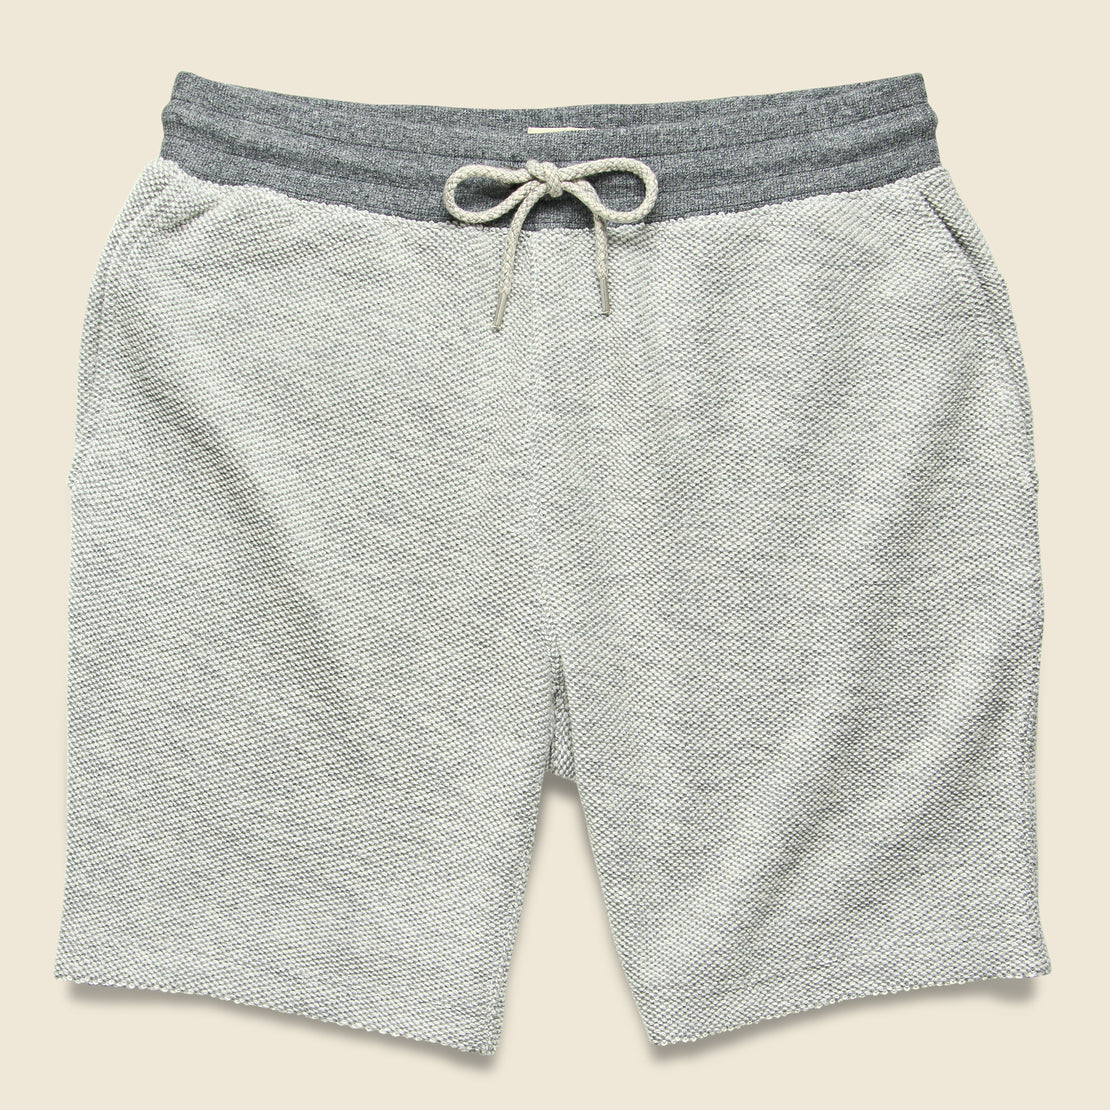 Faherty Backloop Jacquard Sweatshort - Grey